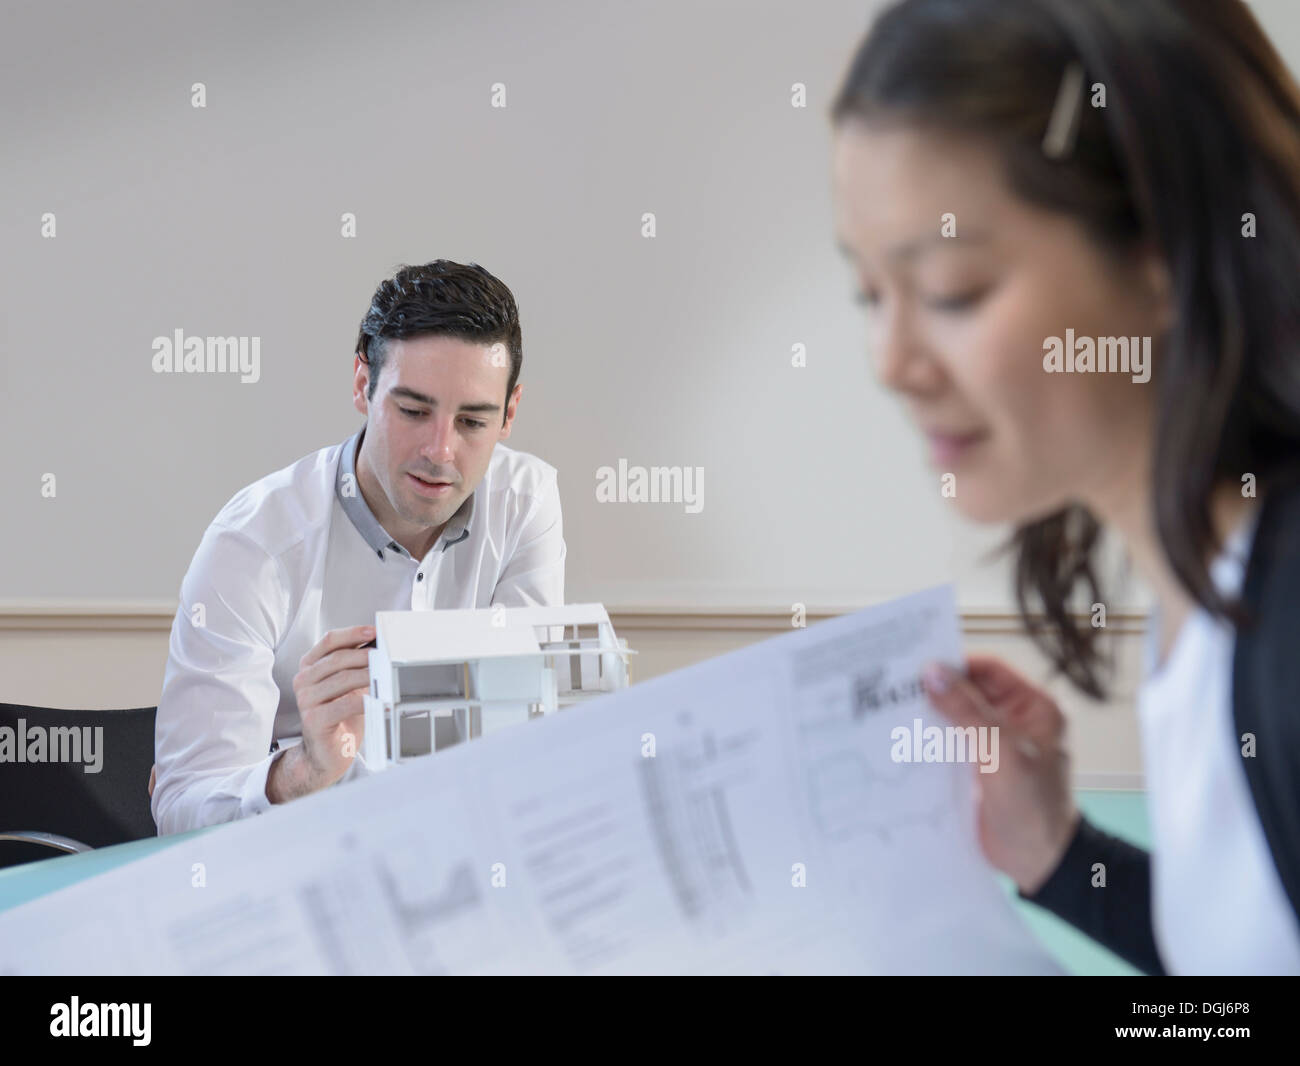 Architects inspecting model of building and plans in office - Stock Image